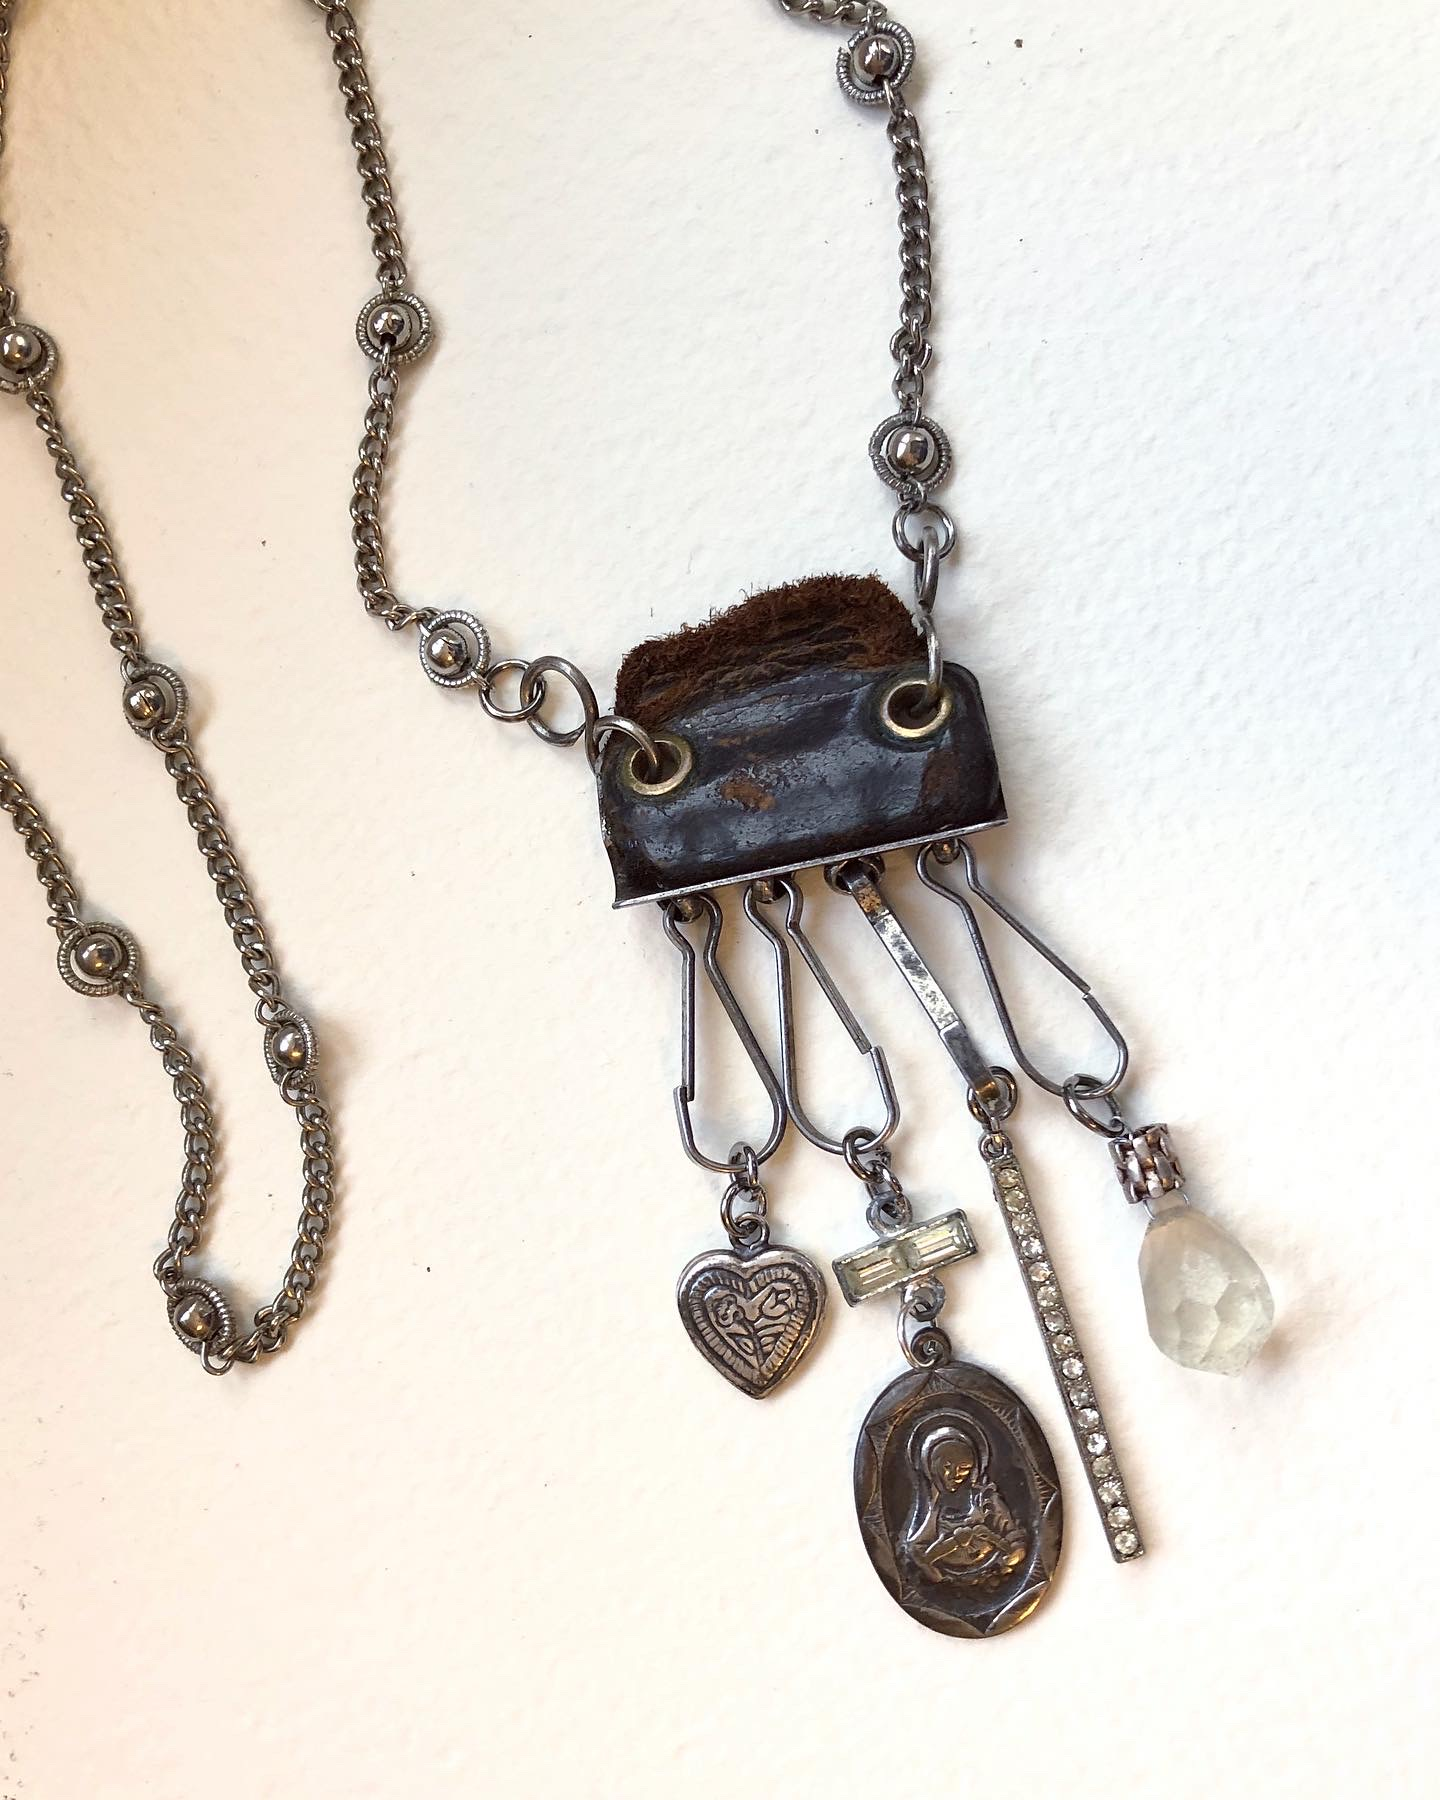 Nice assemblage of vintage items dangle in this one of a kind piece!